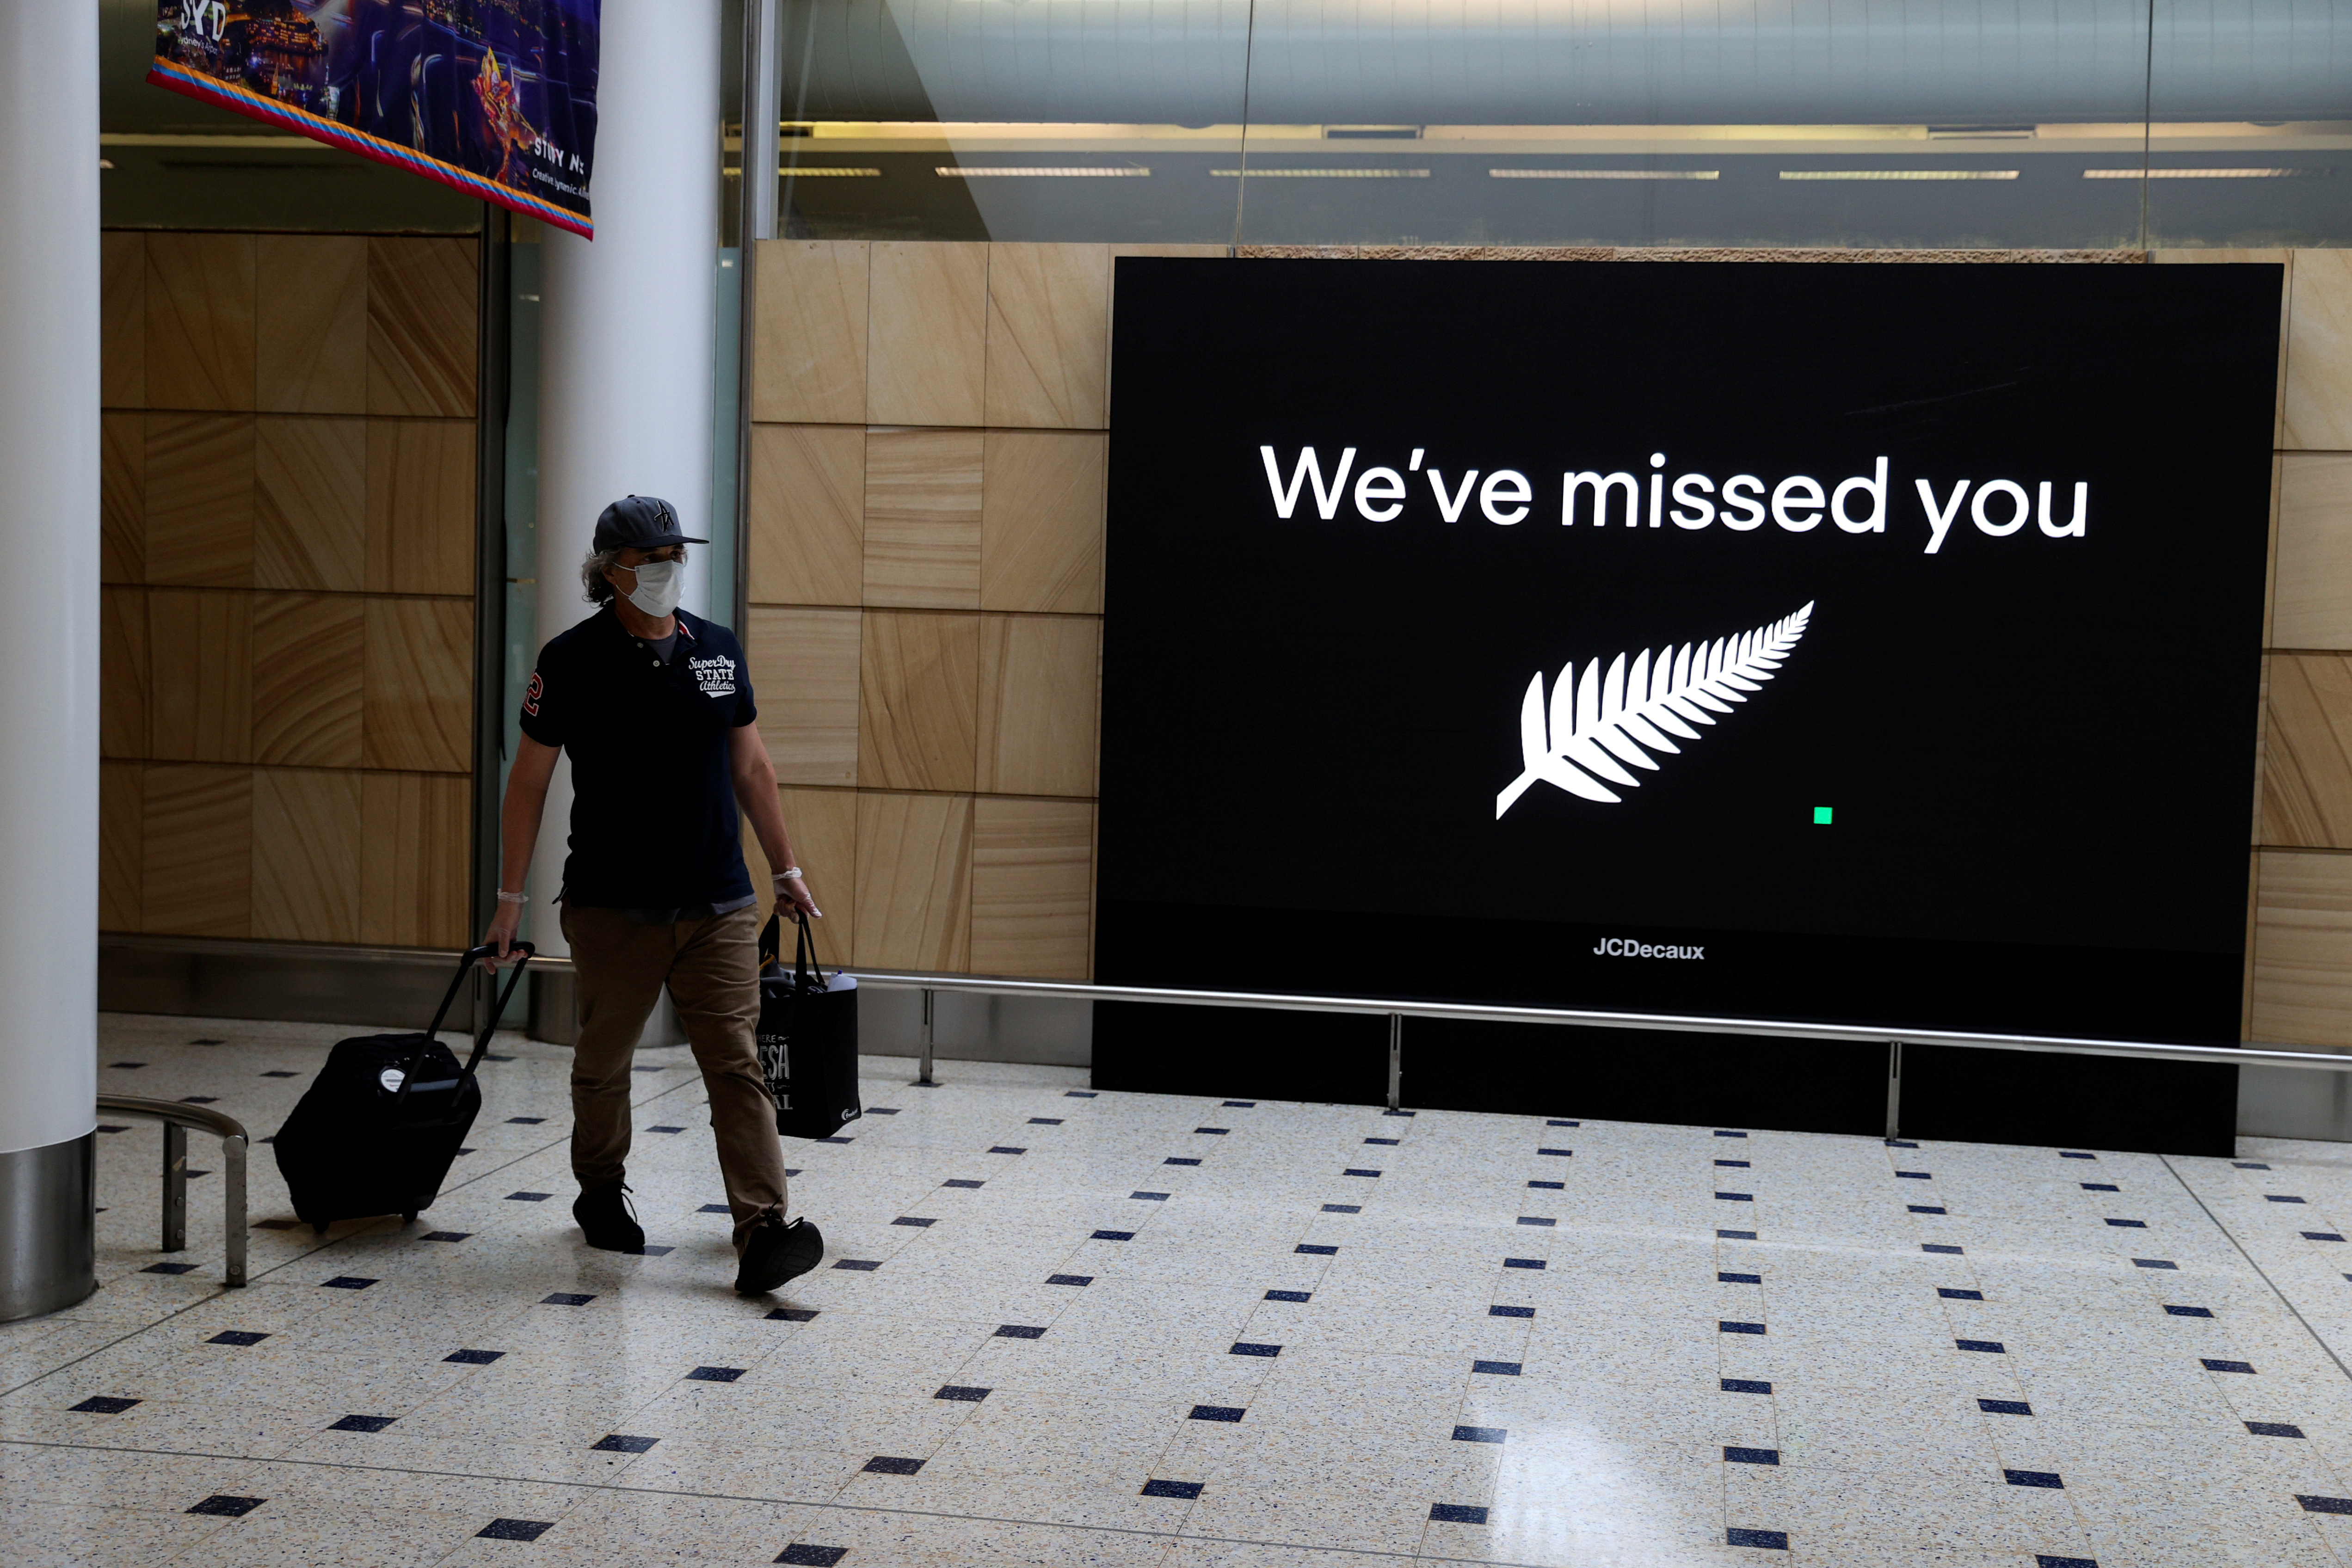 A passenger arrives from New Zealand after the Trans-Tasman travel bubble opened overnight, following an extended border closure due to the coronavirus disease (COVID-19) outbreak, at Sydney Airport in Sydney, Australia, October 16, 2020. REUTERS/Loren Elliott/File Photo